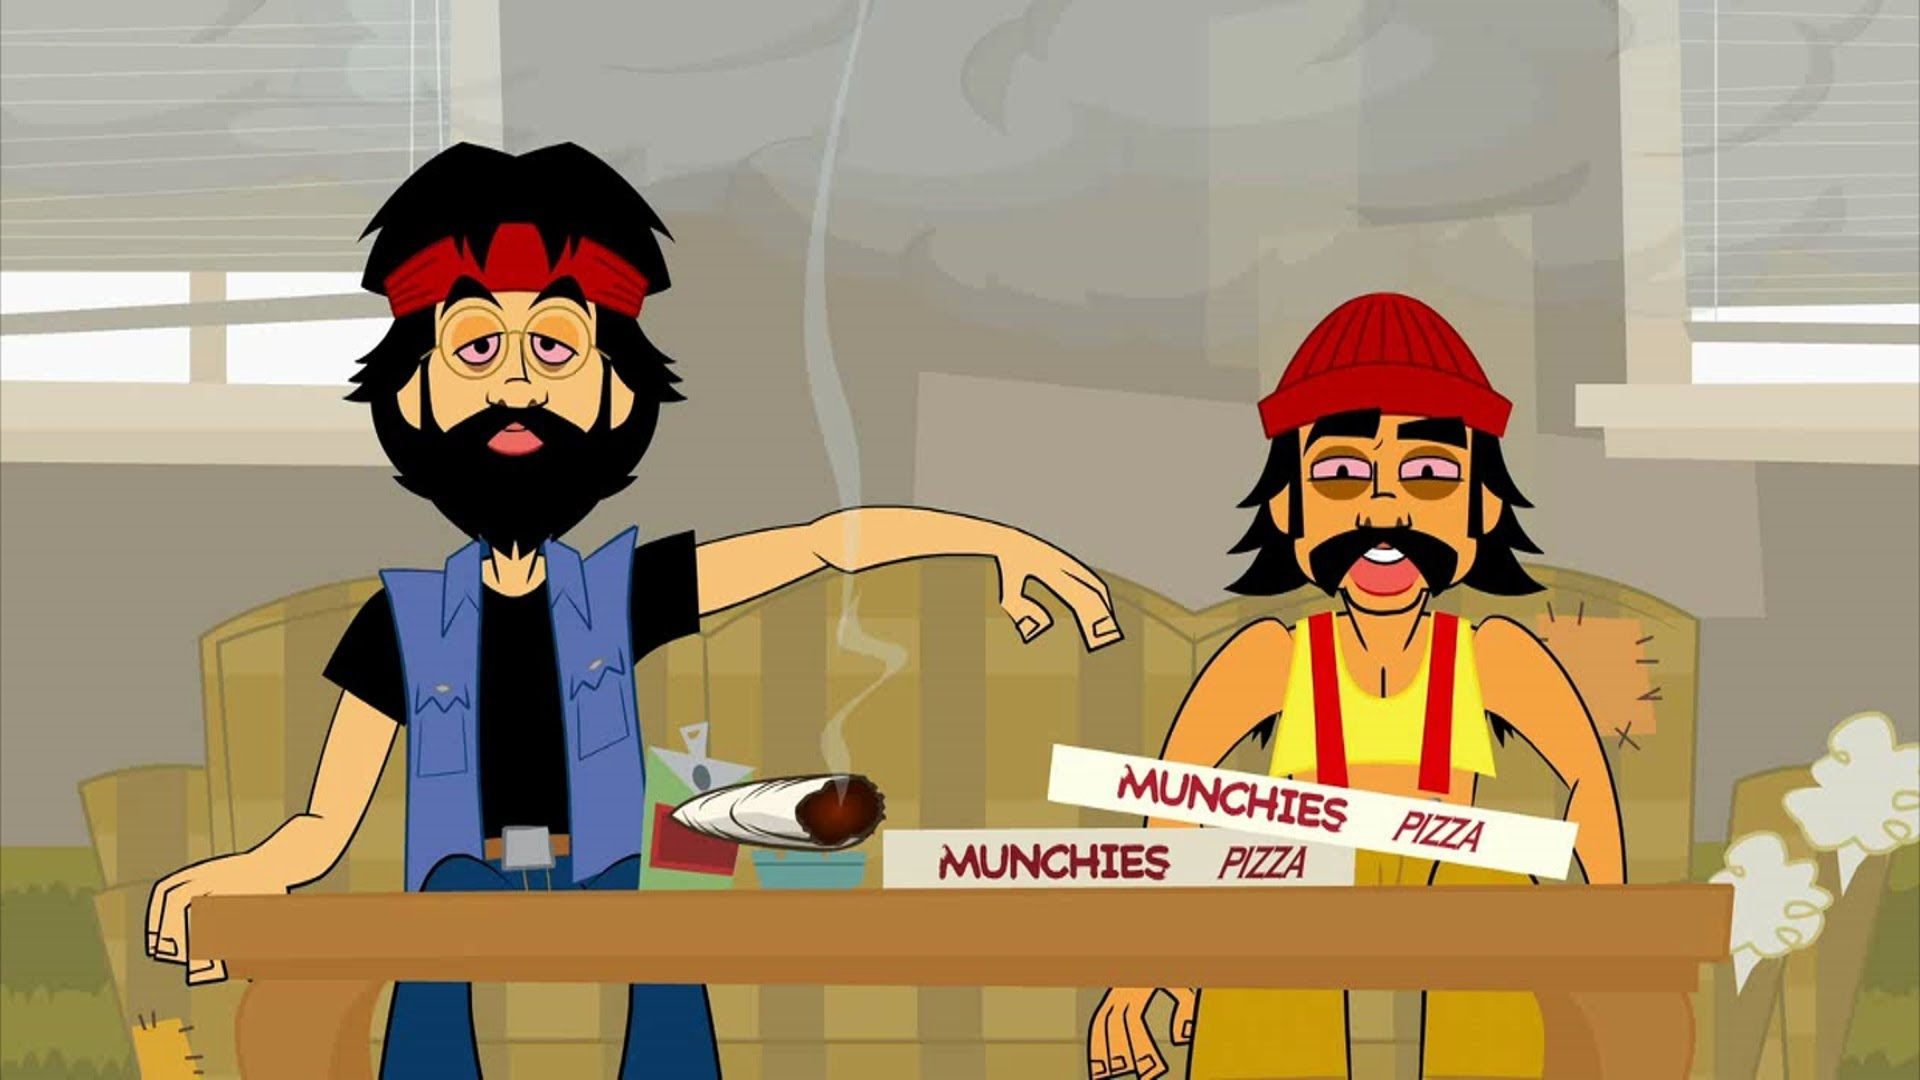 Wallpaper Hd For Mobile Free Download Animated Cheech And Chong Wallpapers Pixelstalk Net